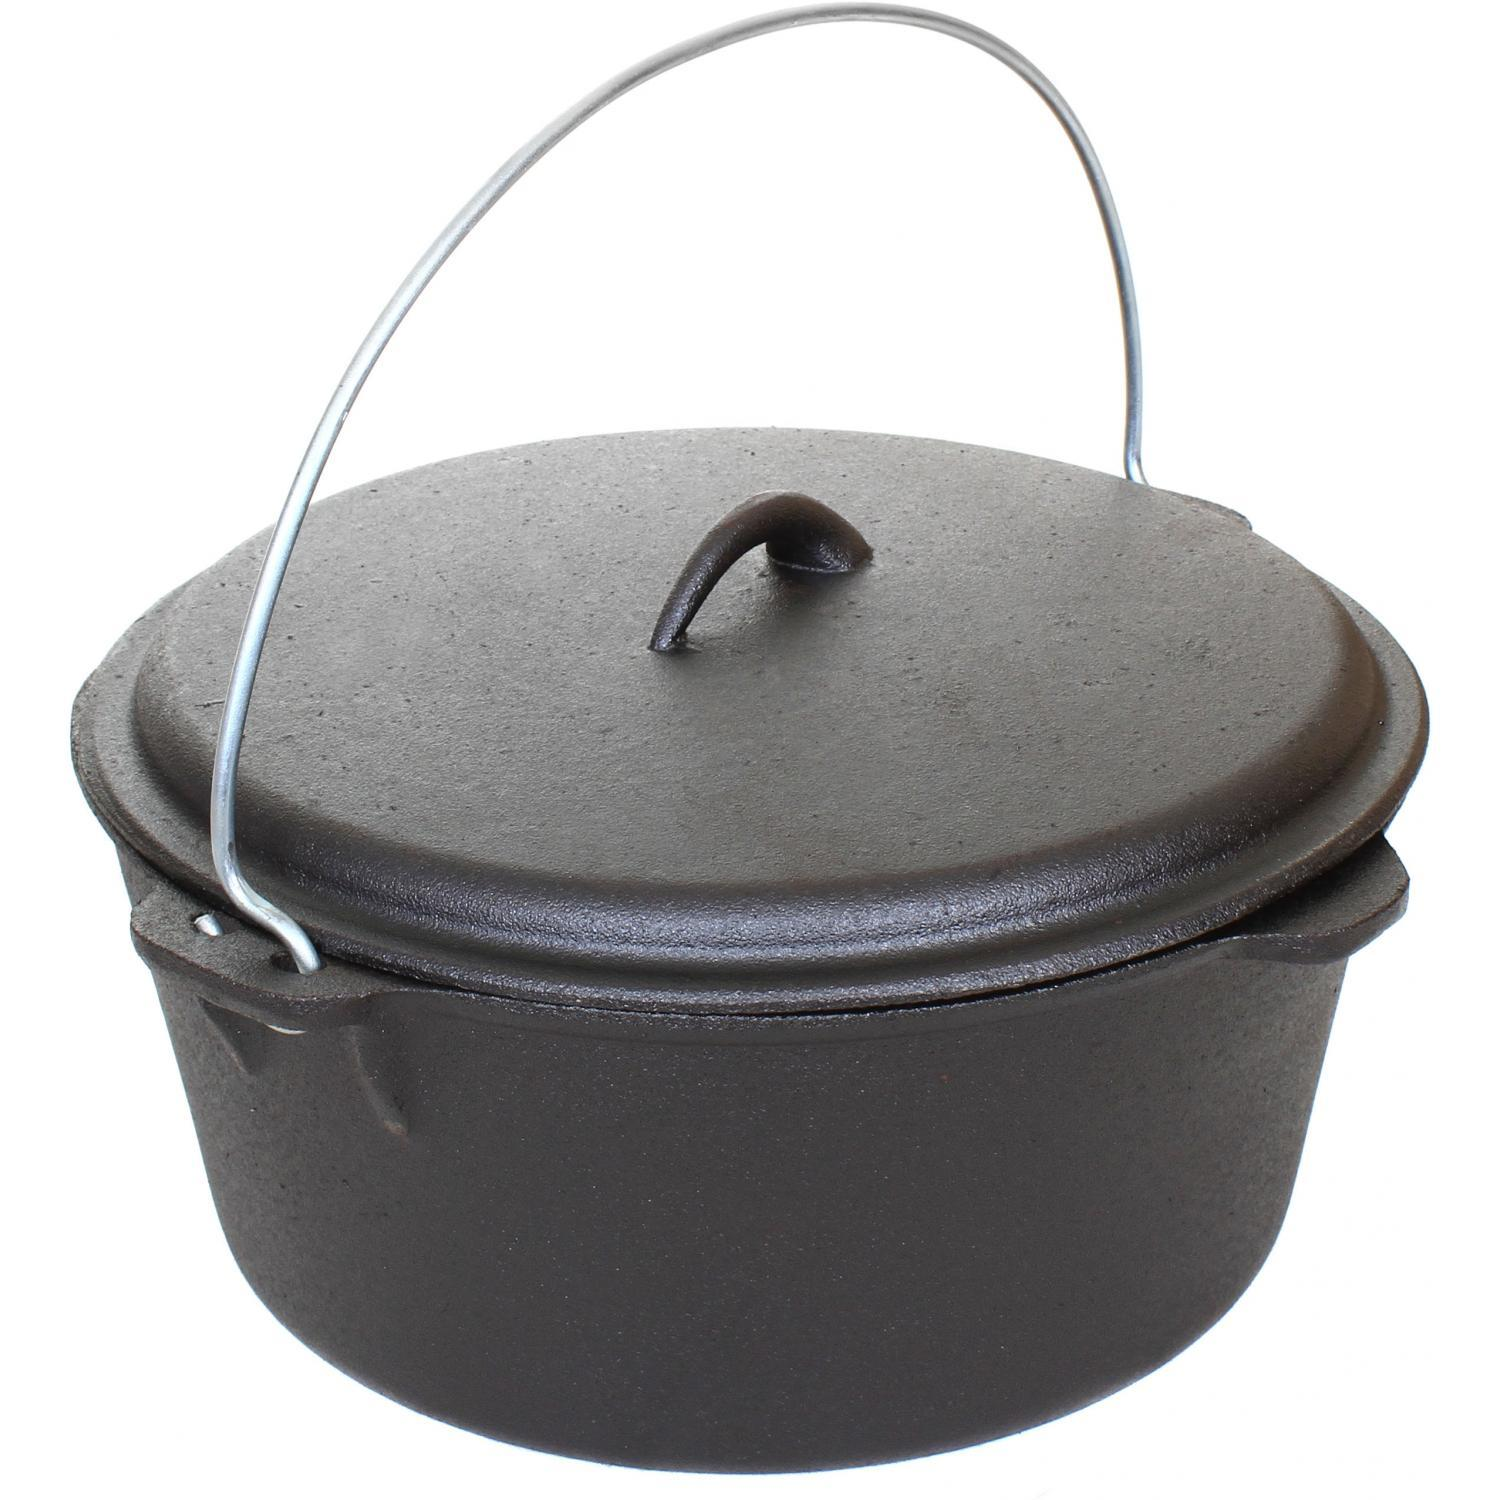 Cheap cajun cookware dutch ovens 6 quart seasoned cast iron dutch oven - Cajun Cookware Dutch Ovens 9 Quart Seasoned Cast Iron Dutch Oven Gl10488s